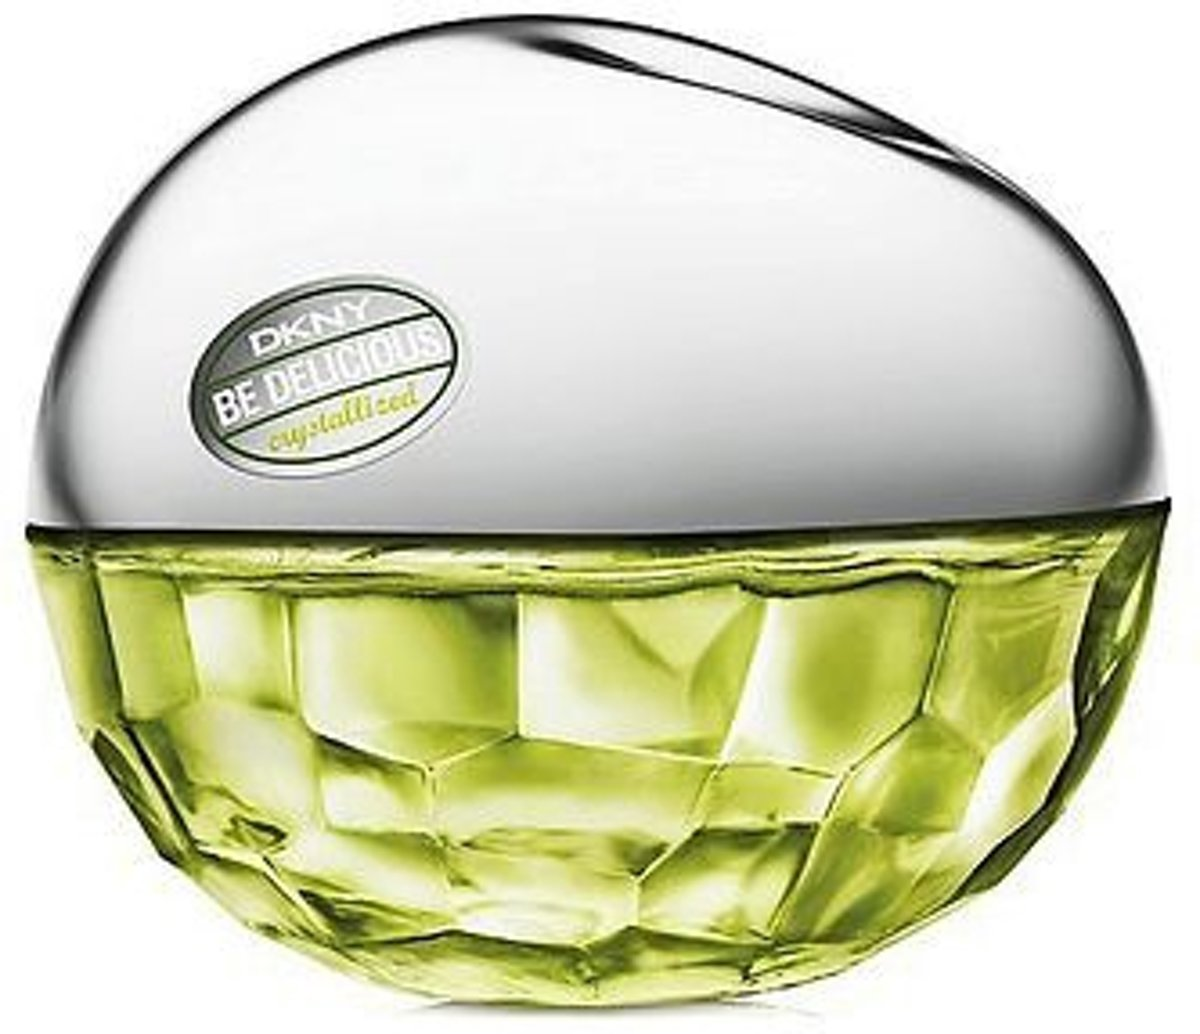 DKNY-Be Delicious Crystalized-eau de parfum-50 ml